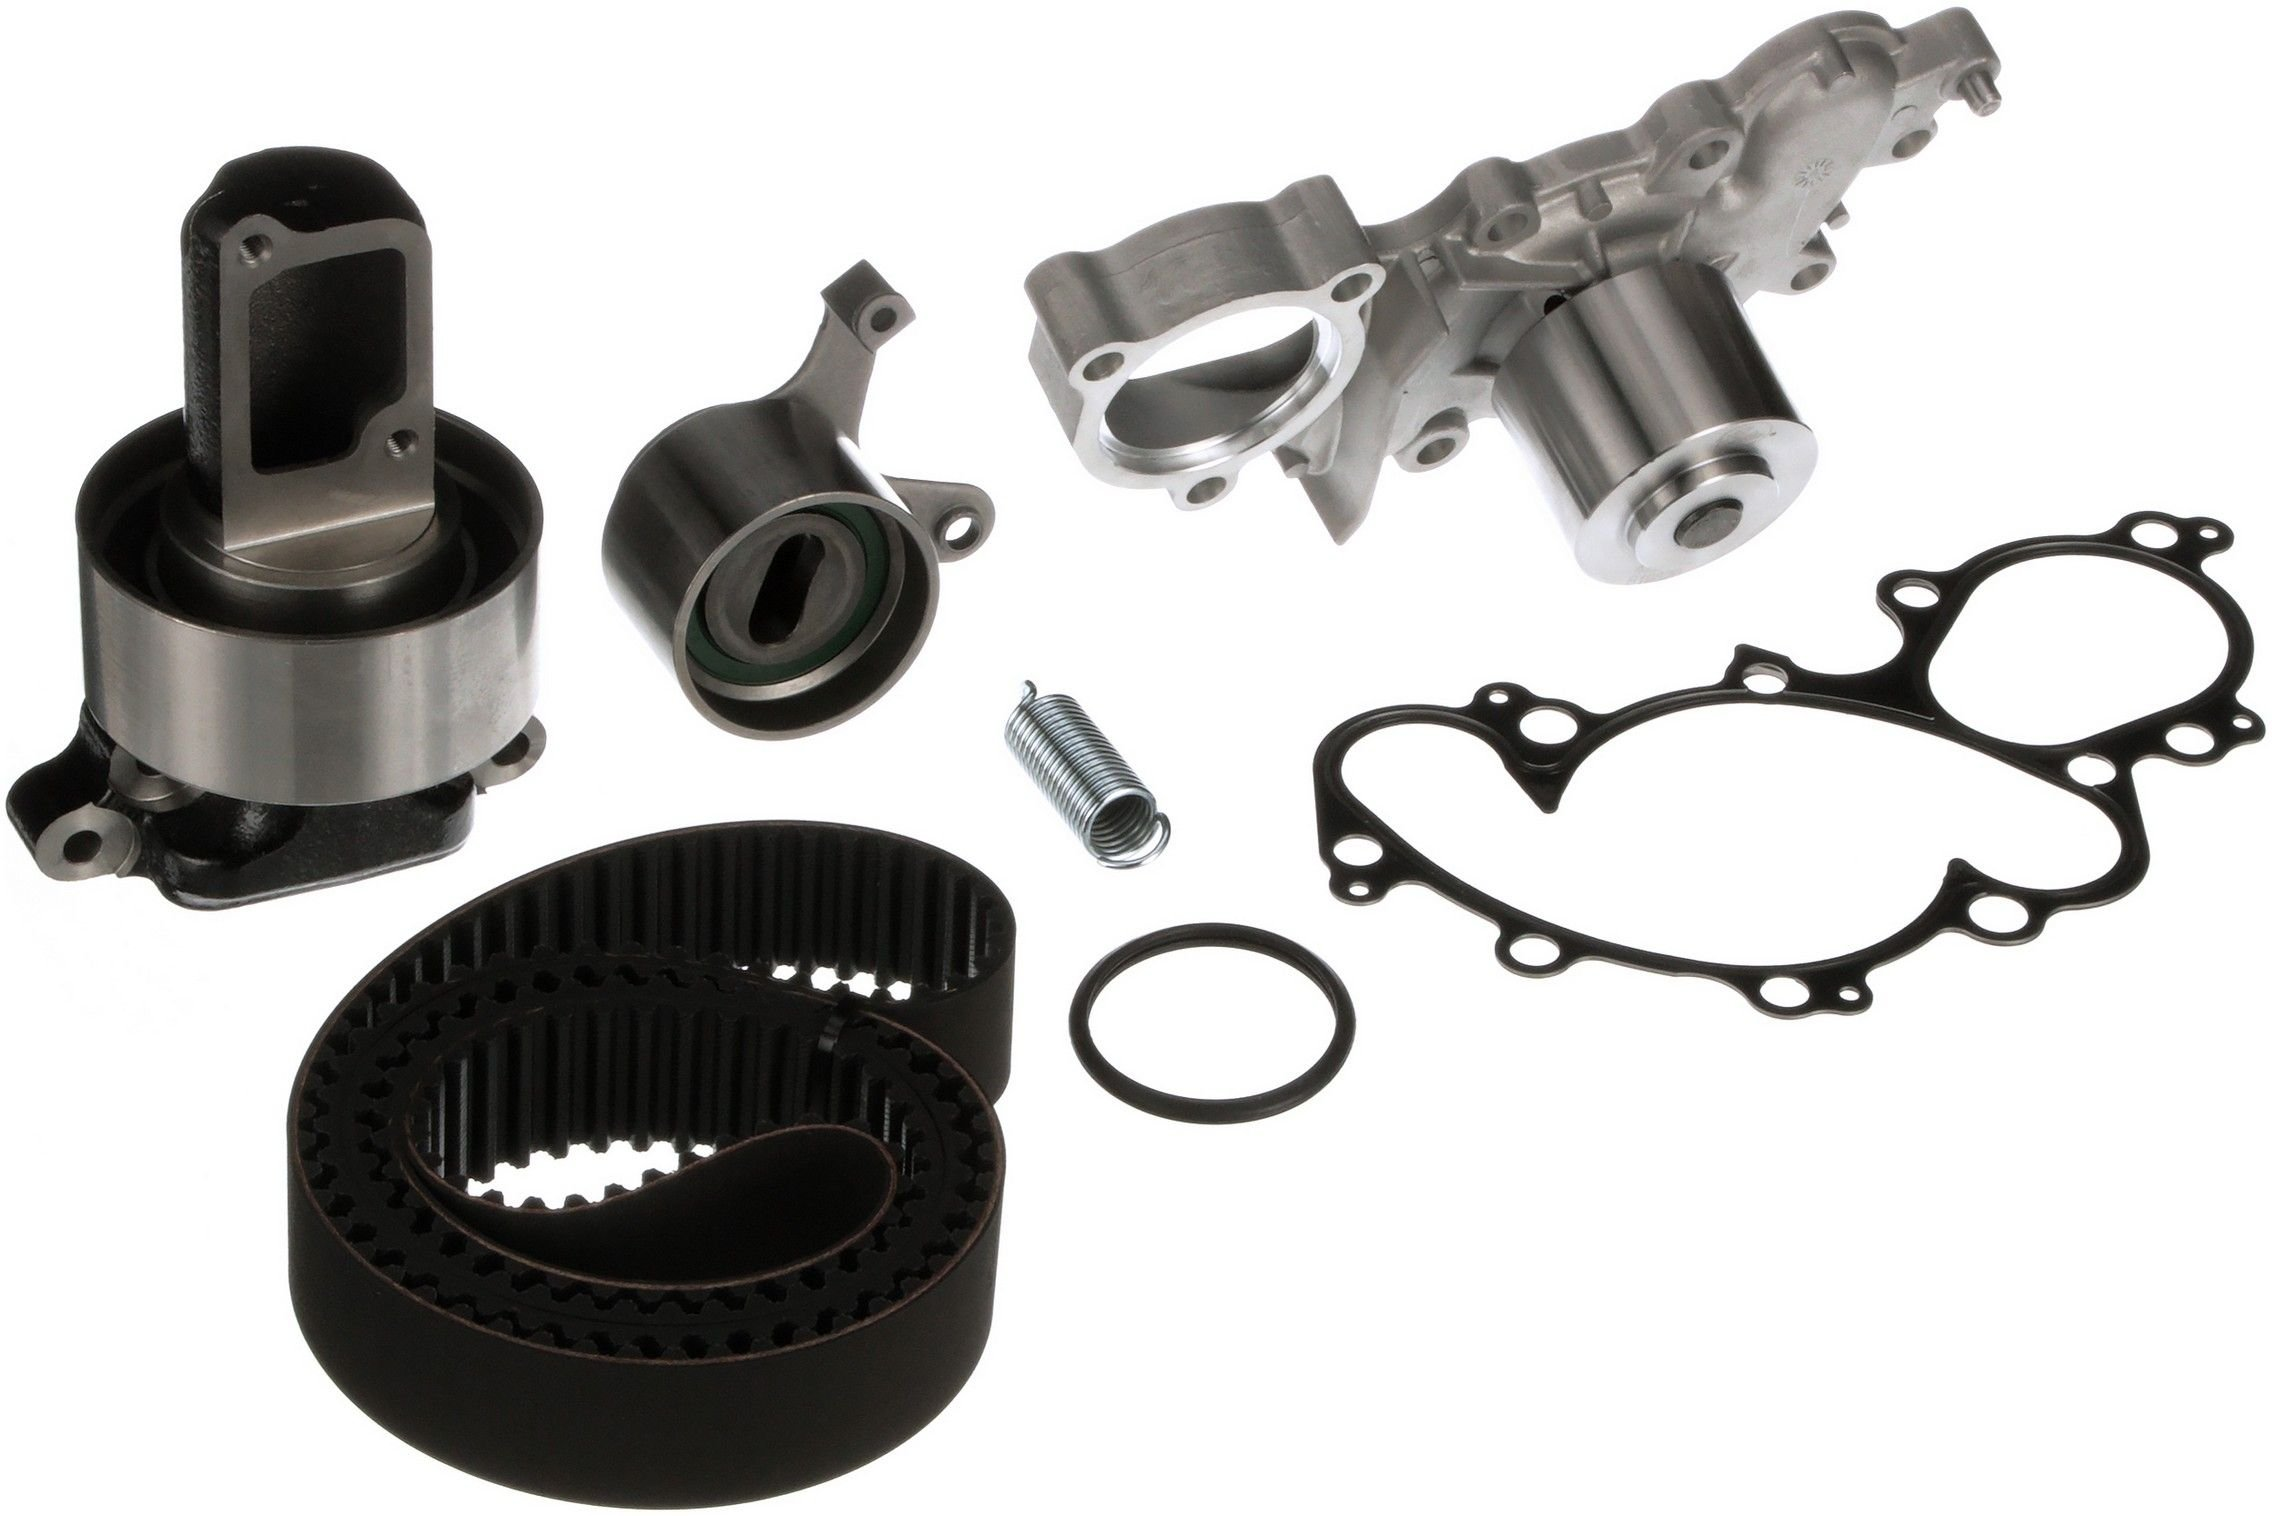 Toyota 4runner Engine Timing Belt Kit With Water Pump Replacement For 1989 6 Cyl 30l Gates Tckwp240d